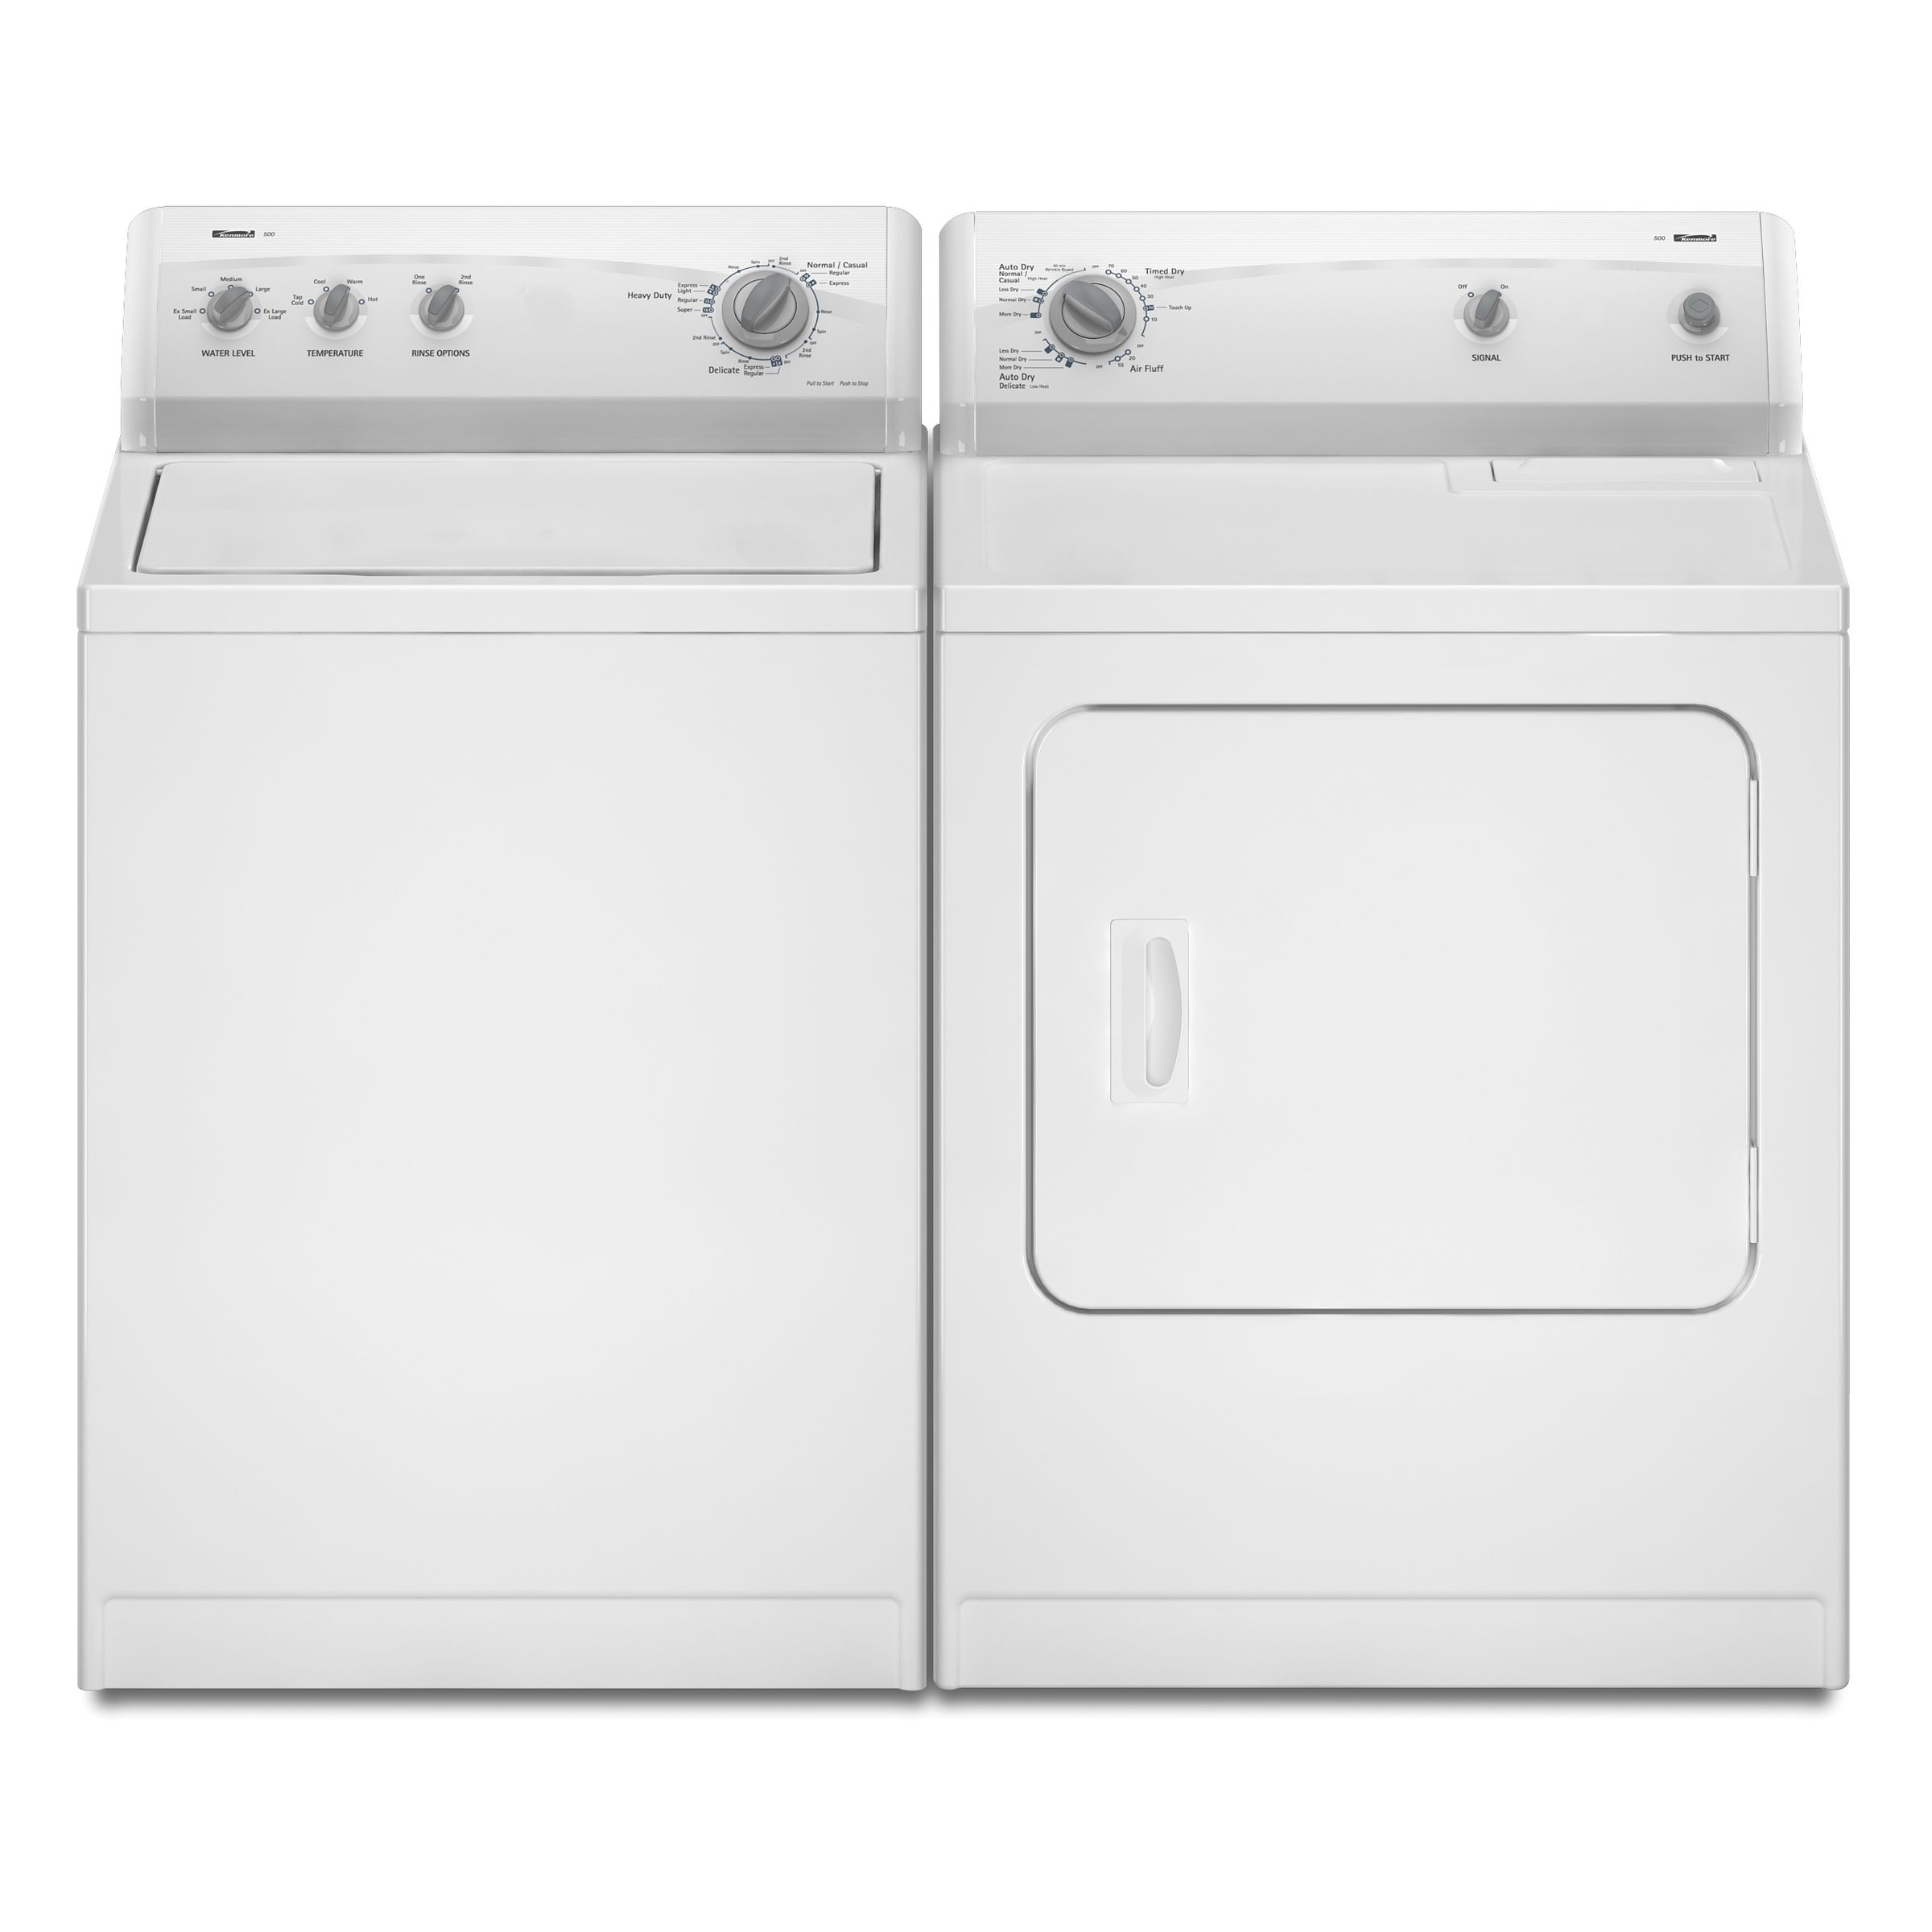 Kenmore 500 3.5 cu. ft. Capacity Top-Load Washer